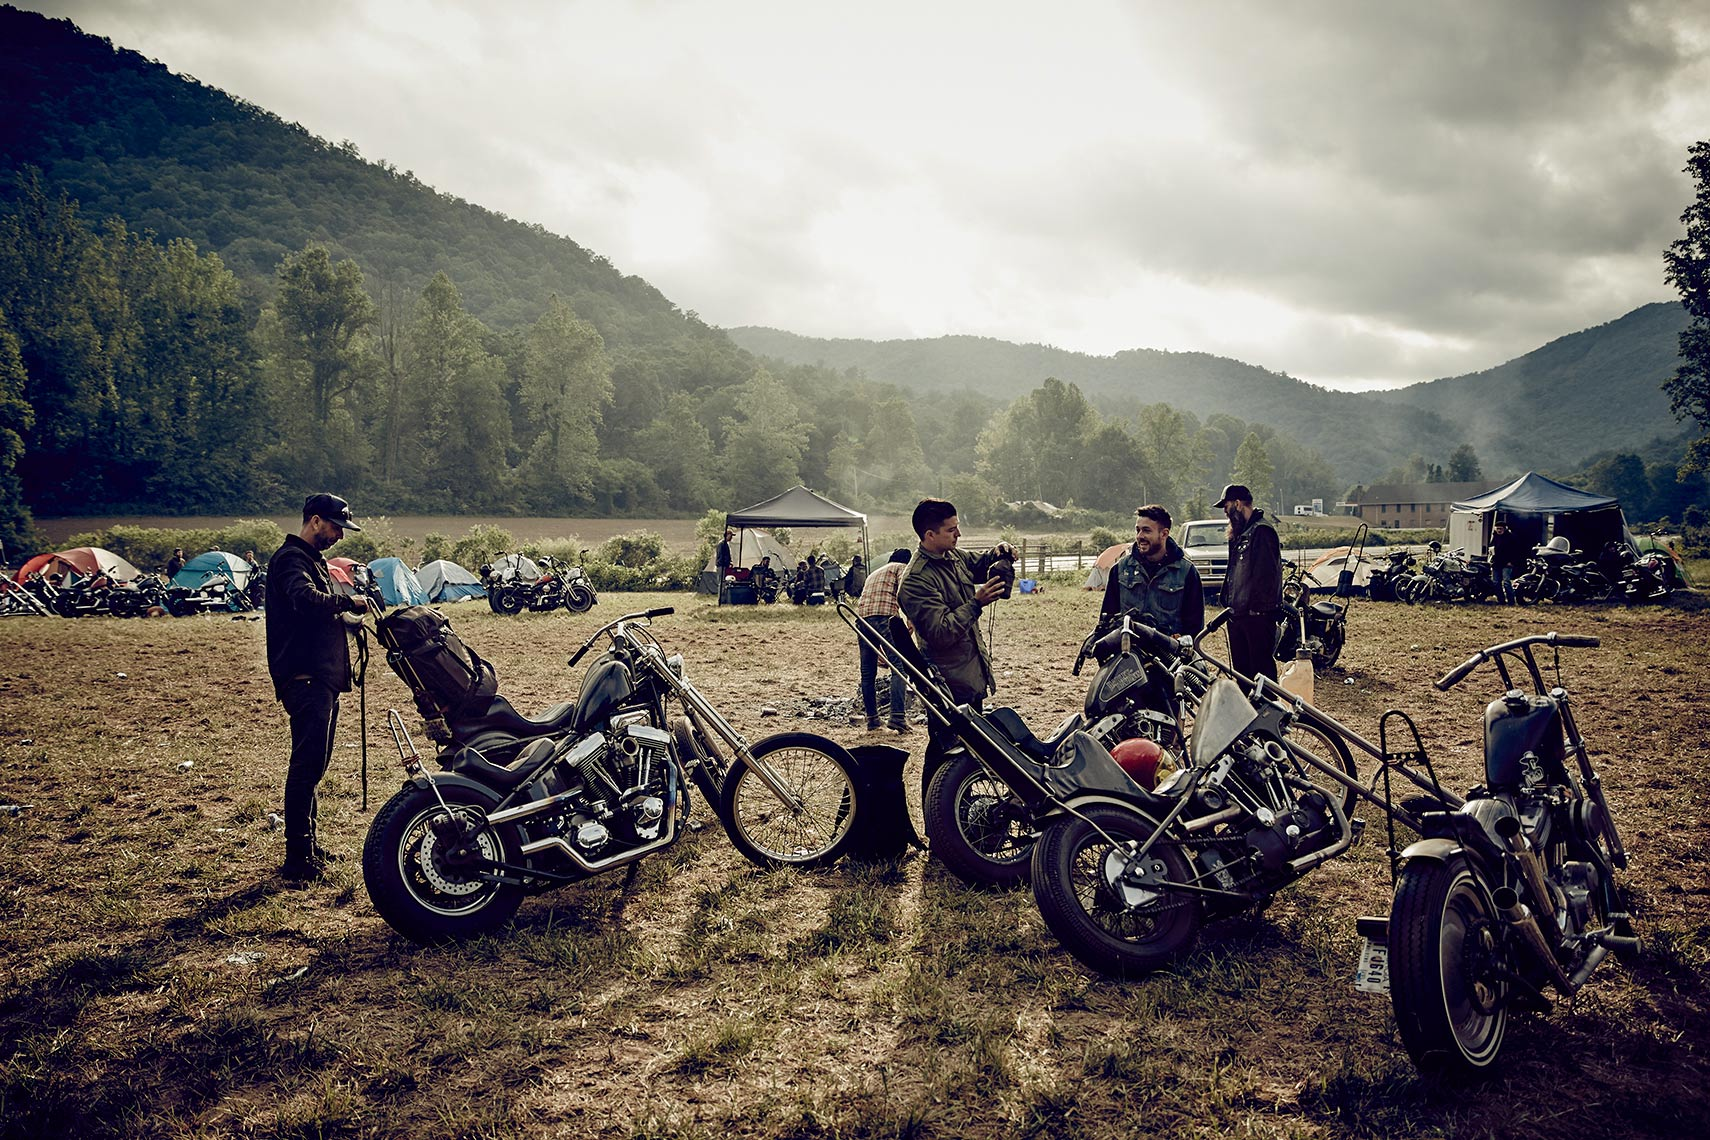 15015SmokeyMountainChopperFest_03092